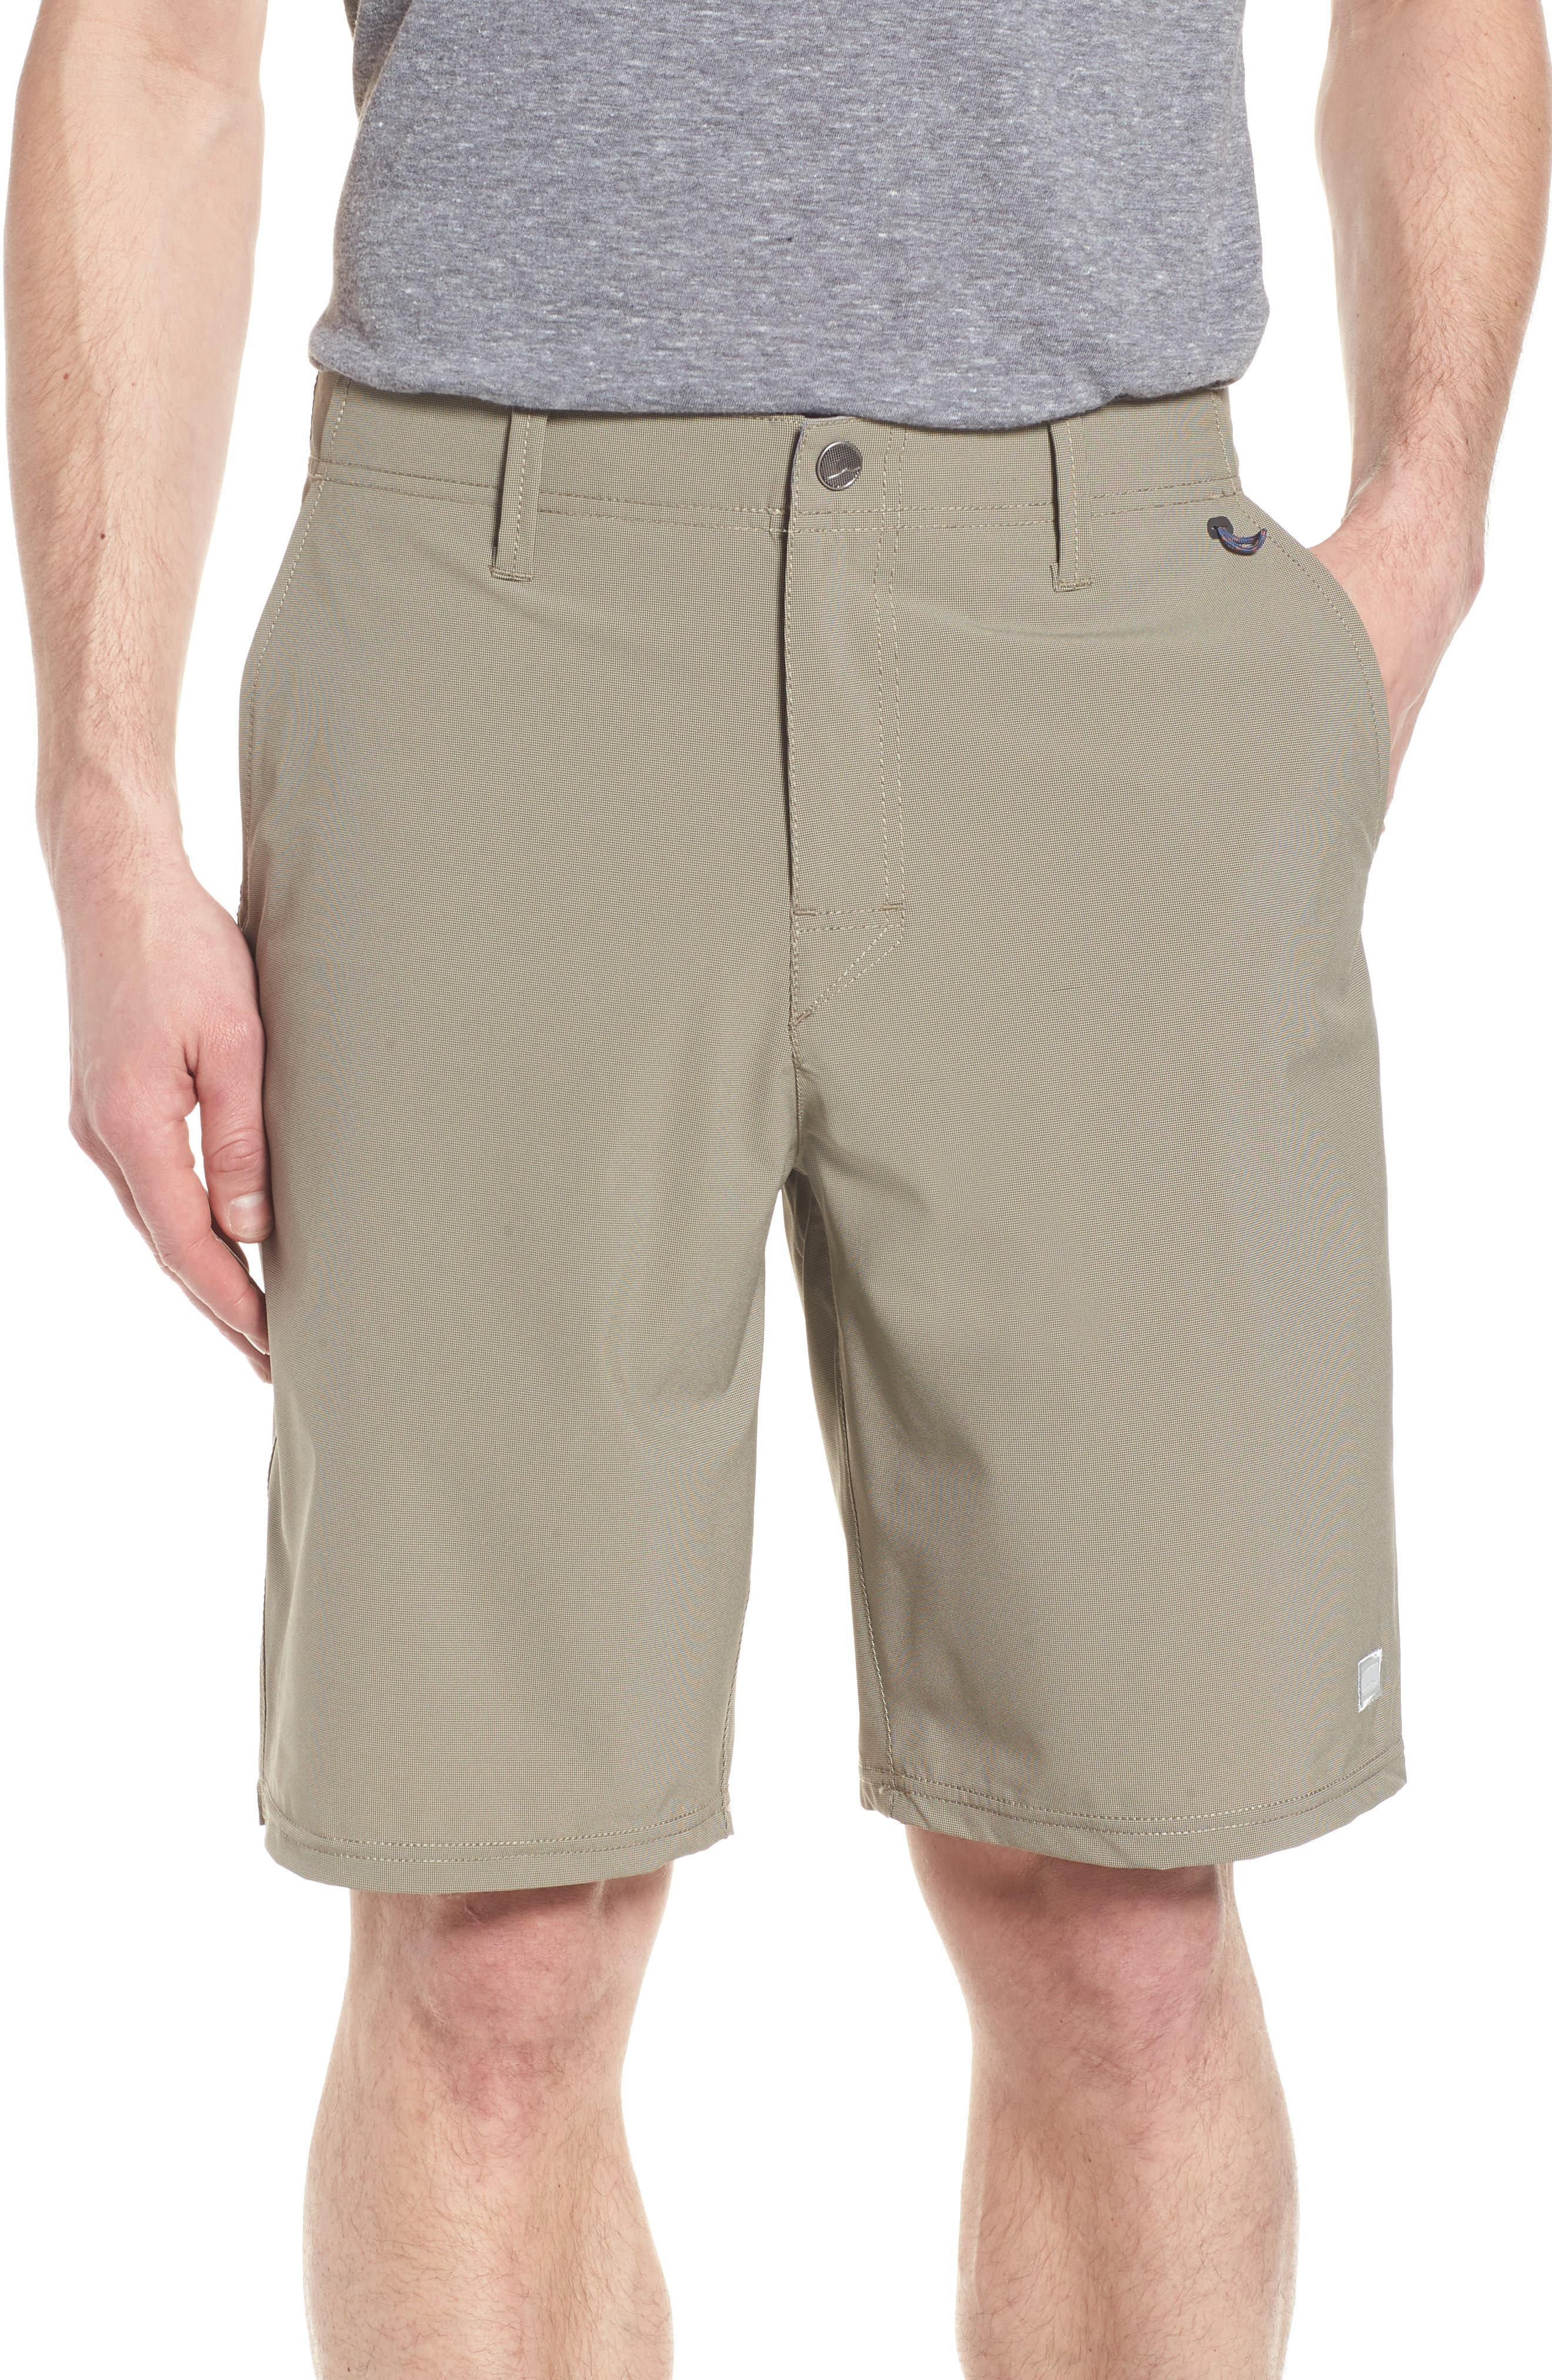 Seaside Hybrid Shorts,                         Main,                         color, Espresso